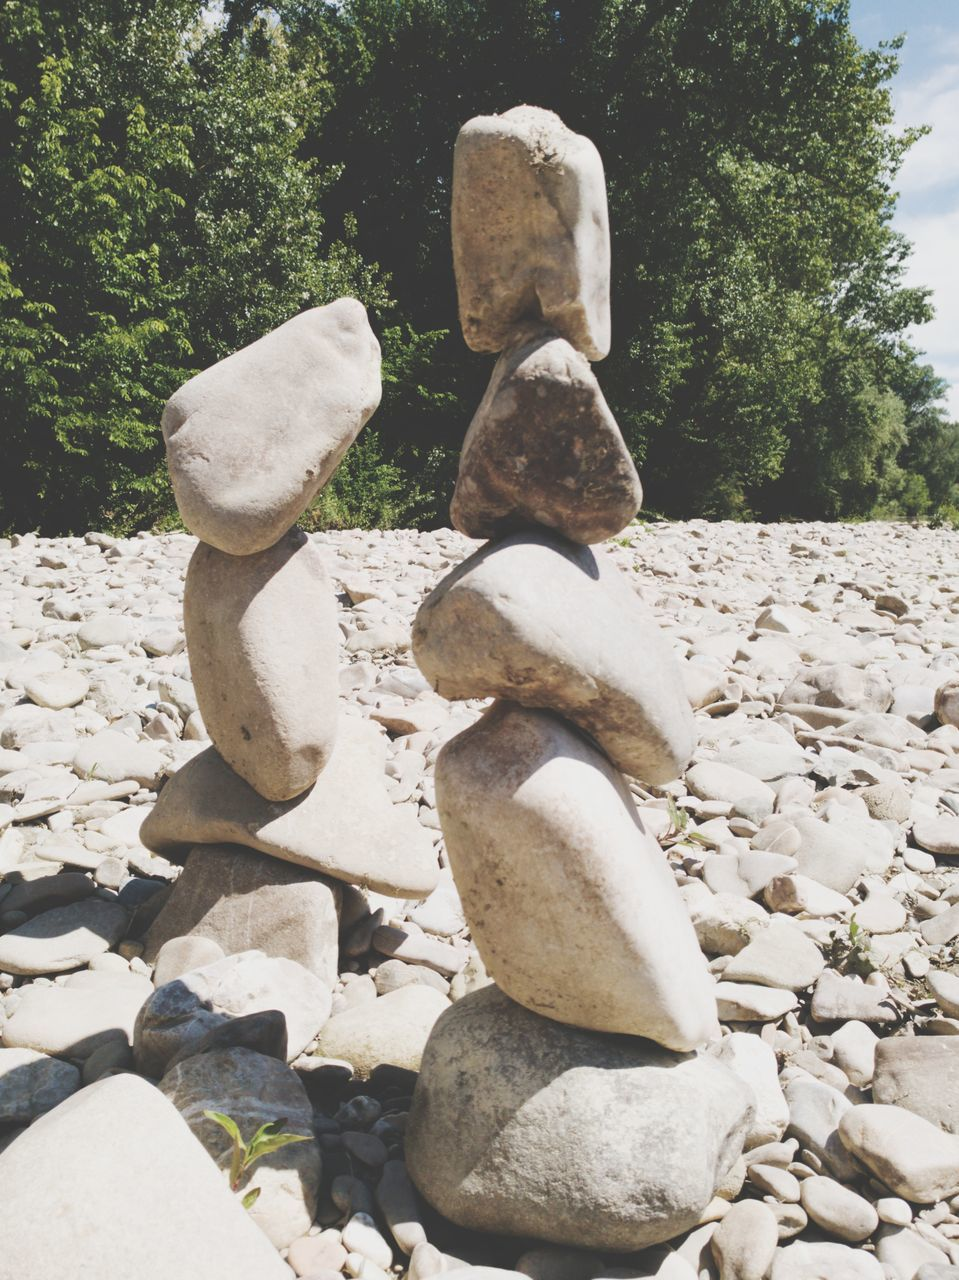 stone - object, rock - object, pebble, tree, day, no people, nature, outdoors, stack, tranquility, statue, beauty in nature, close-up, sky